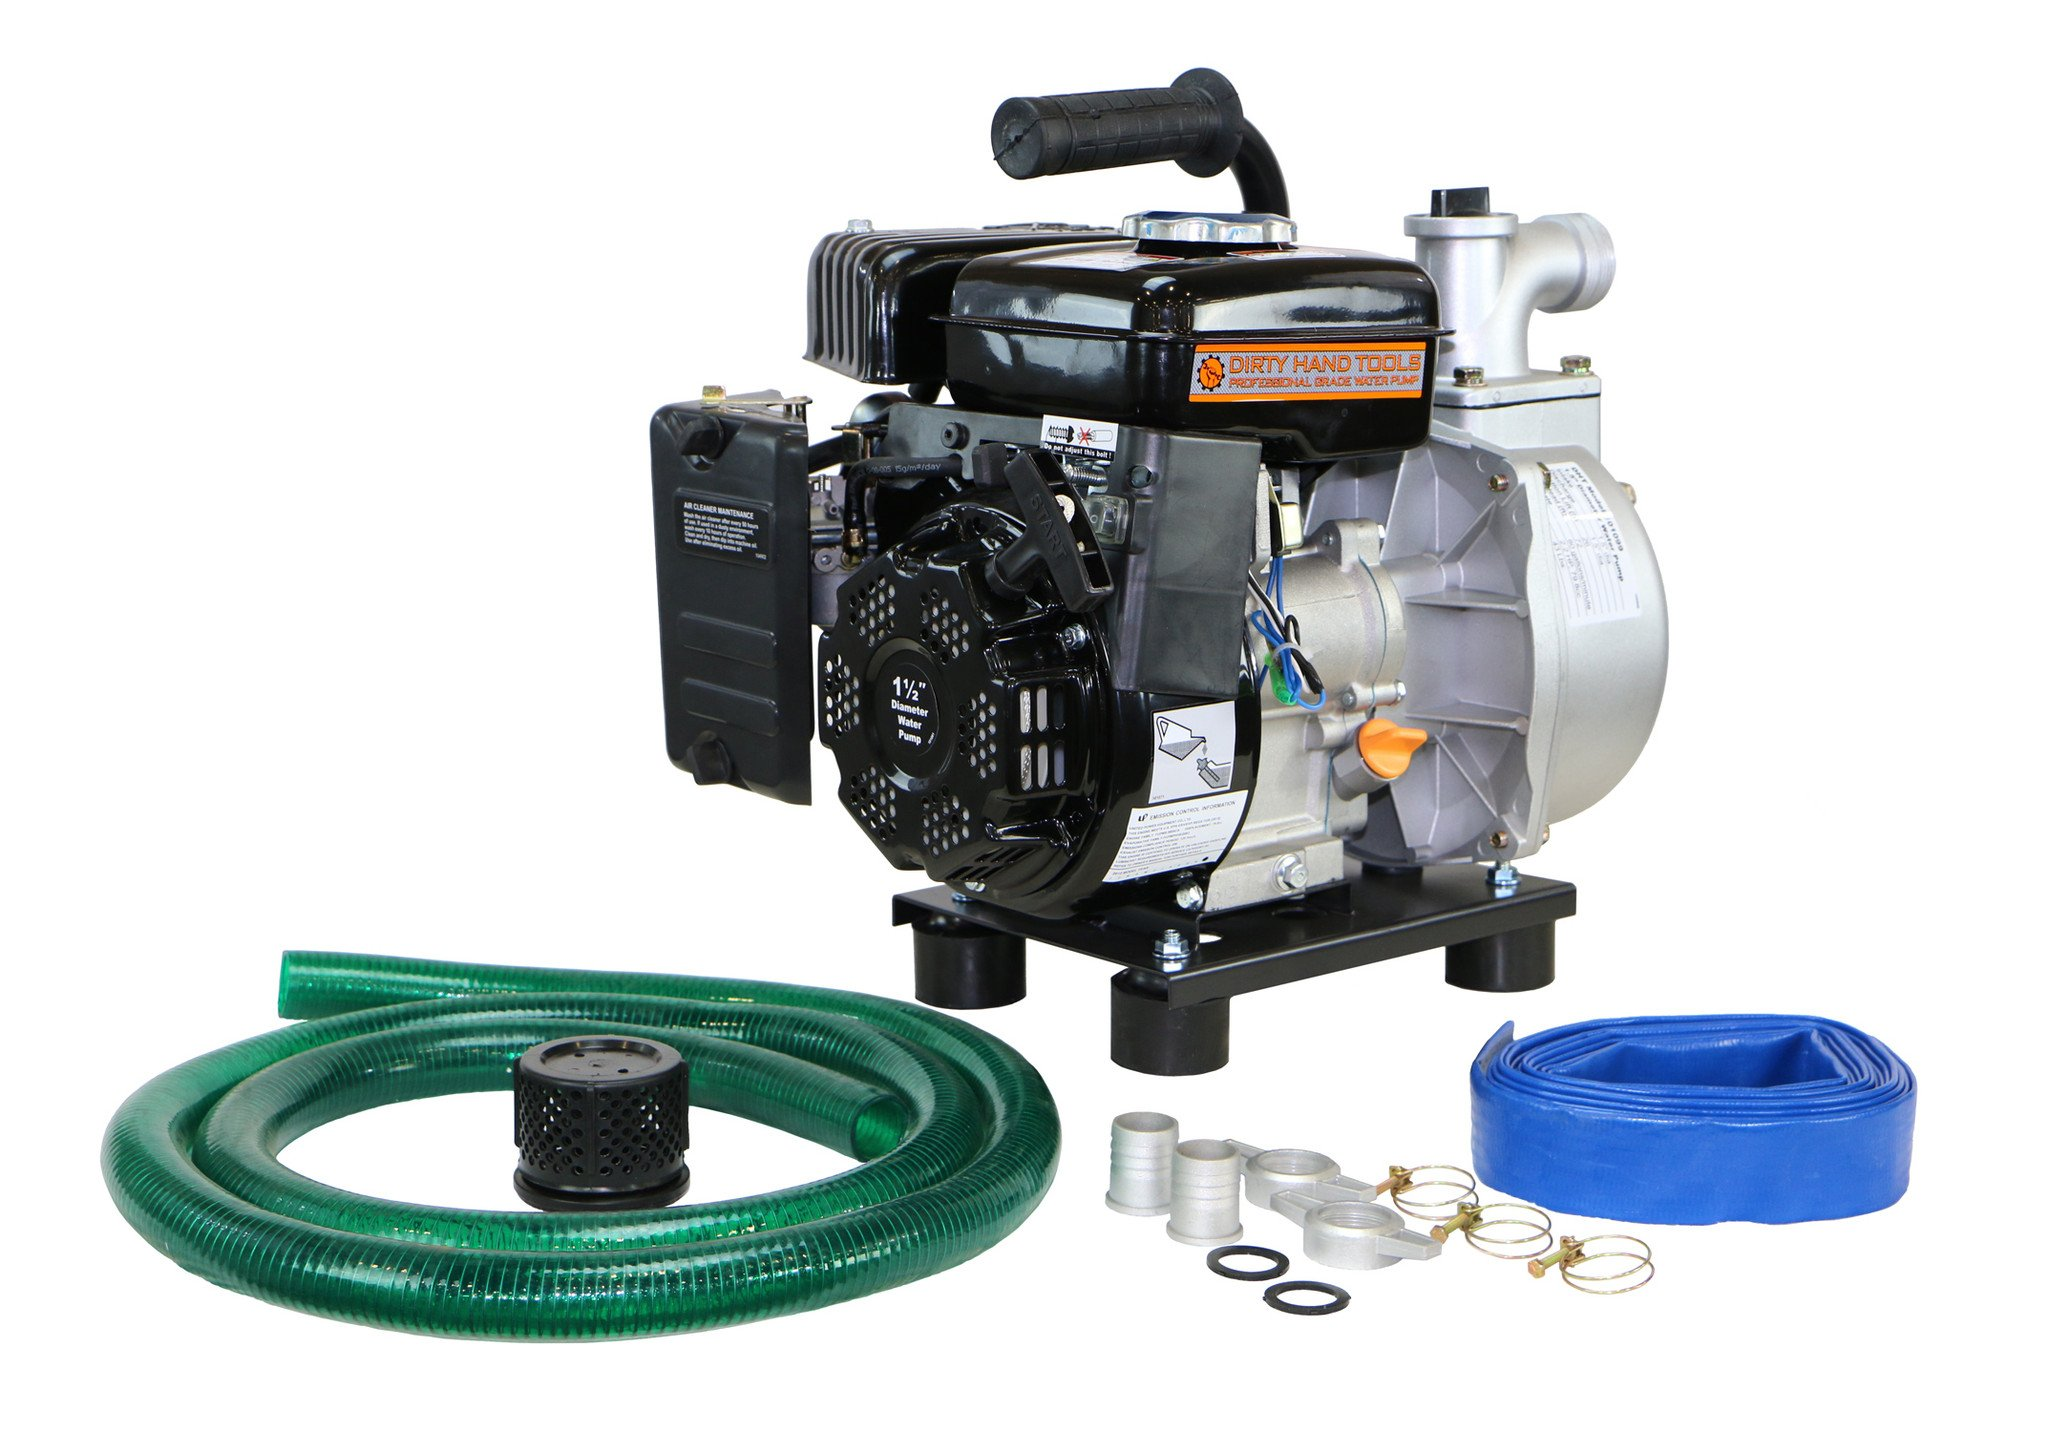 Dirty Hand Tools 1.5'' Diameter Water Pump with Hose Kit